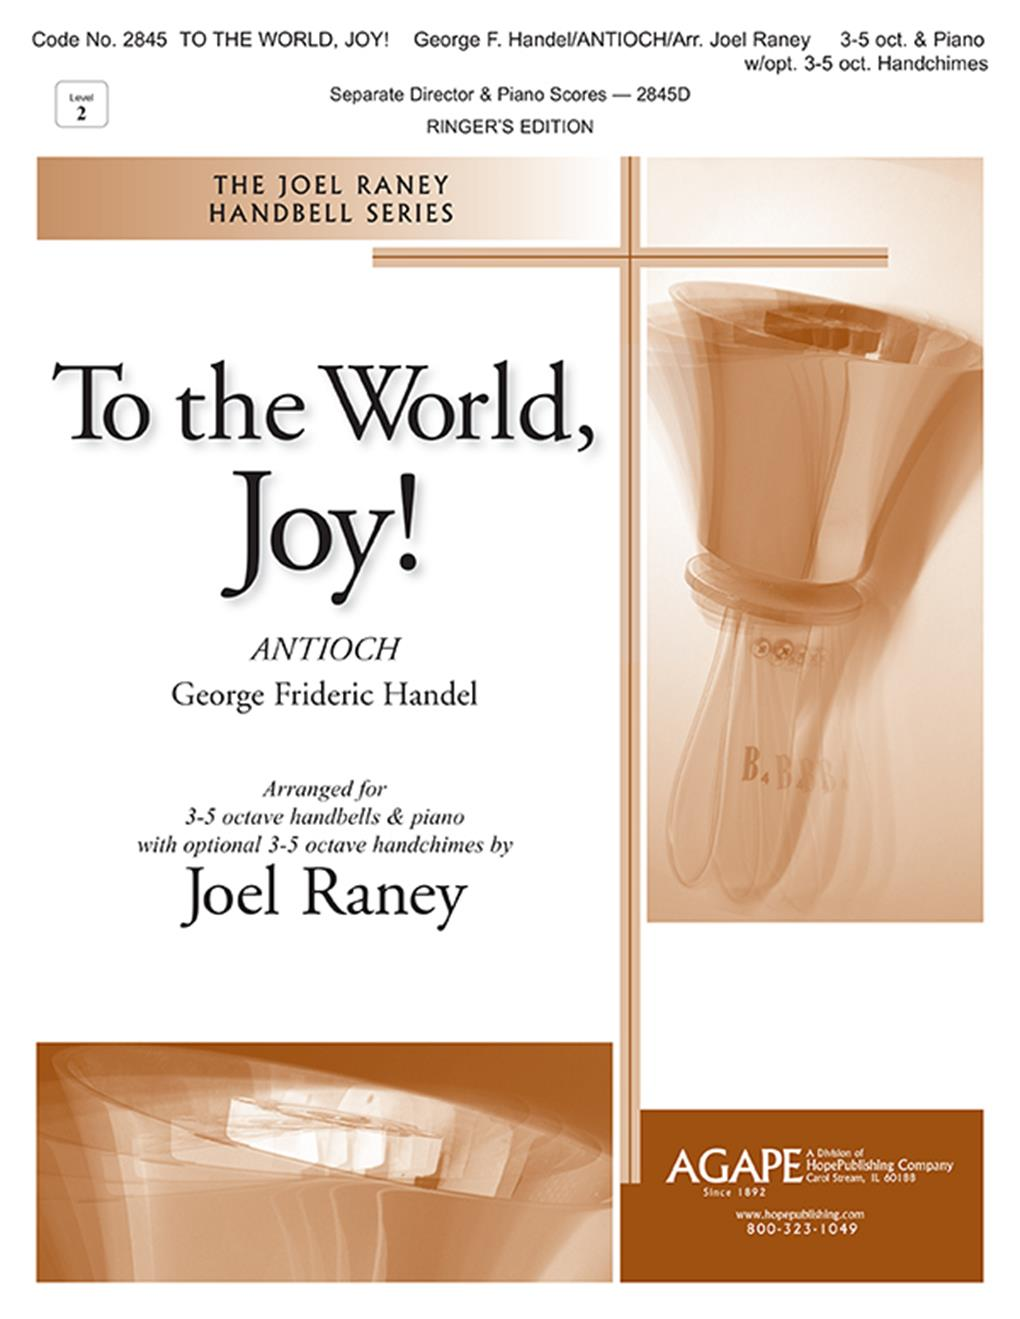 To the World Joy - 3-5 oct. w- piano Cover Image